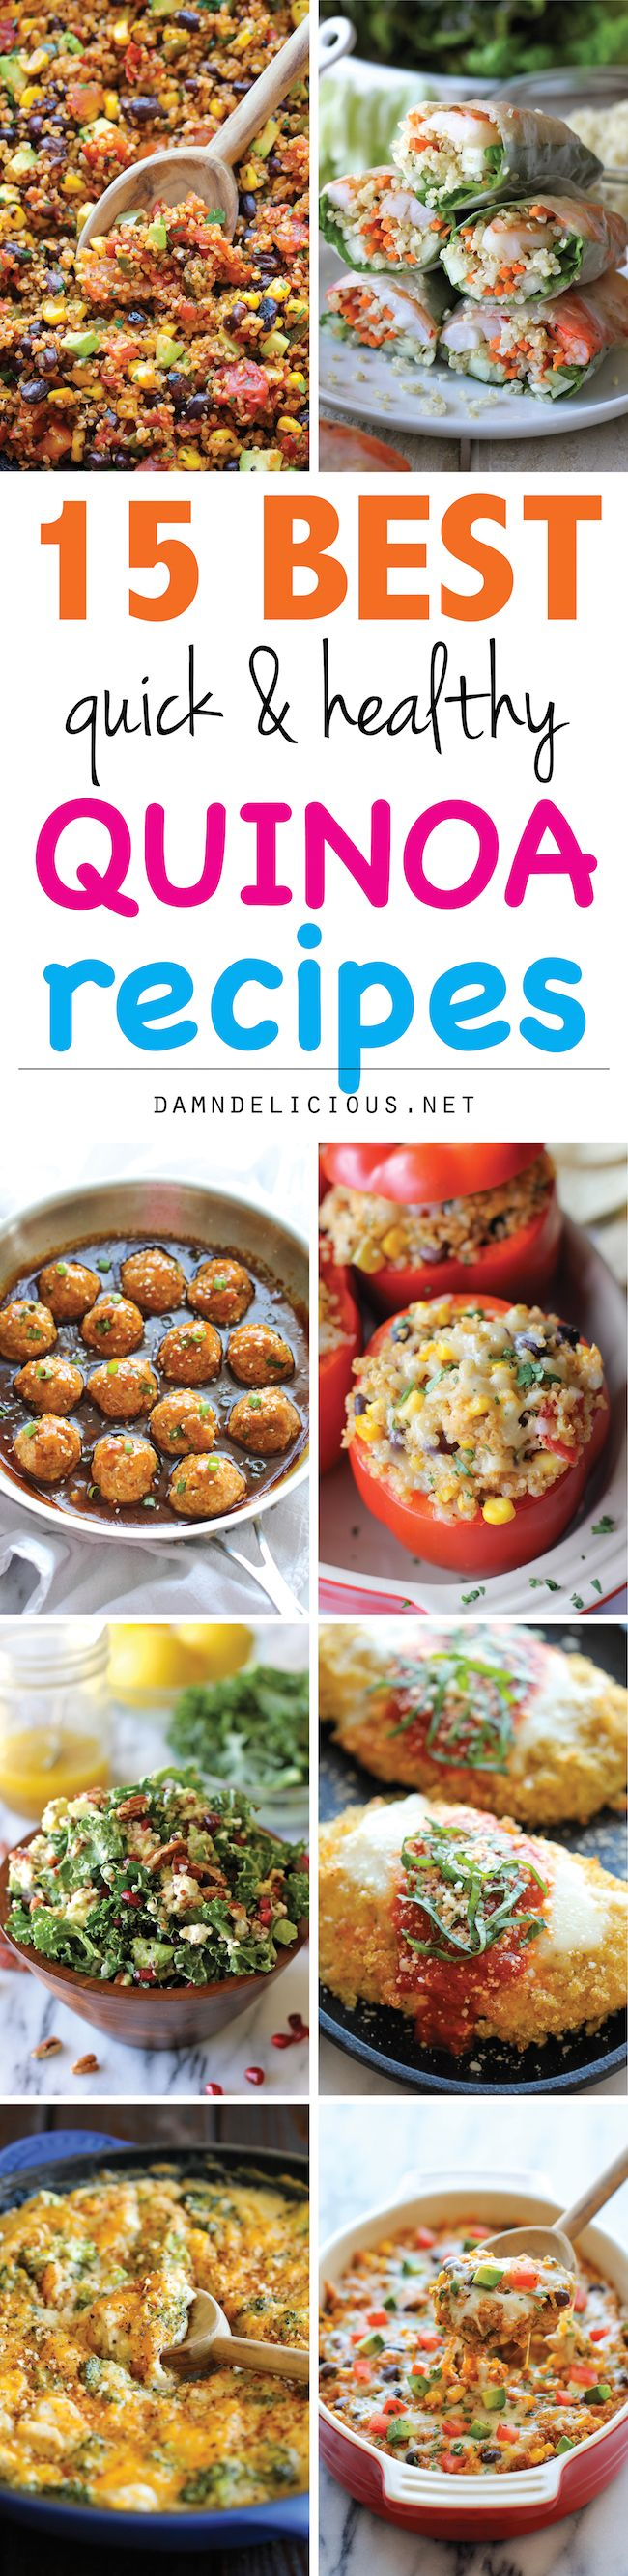 Photo of 15 Best Quick and Healthy Quinoa Recipes